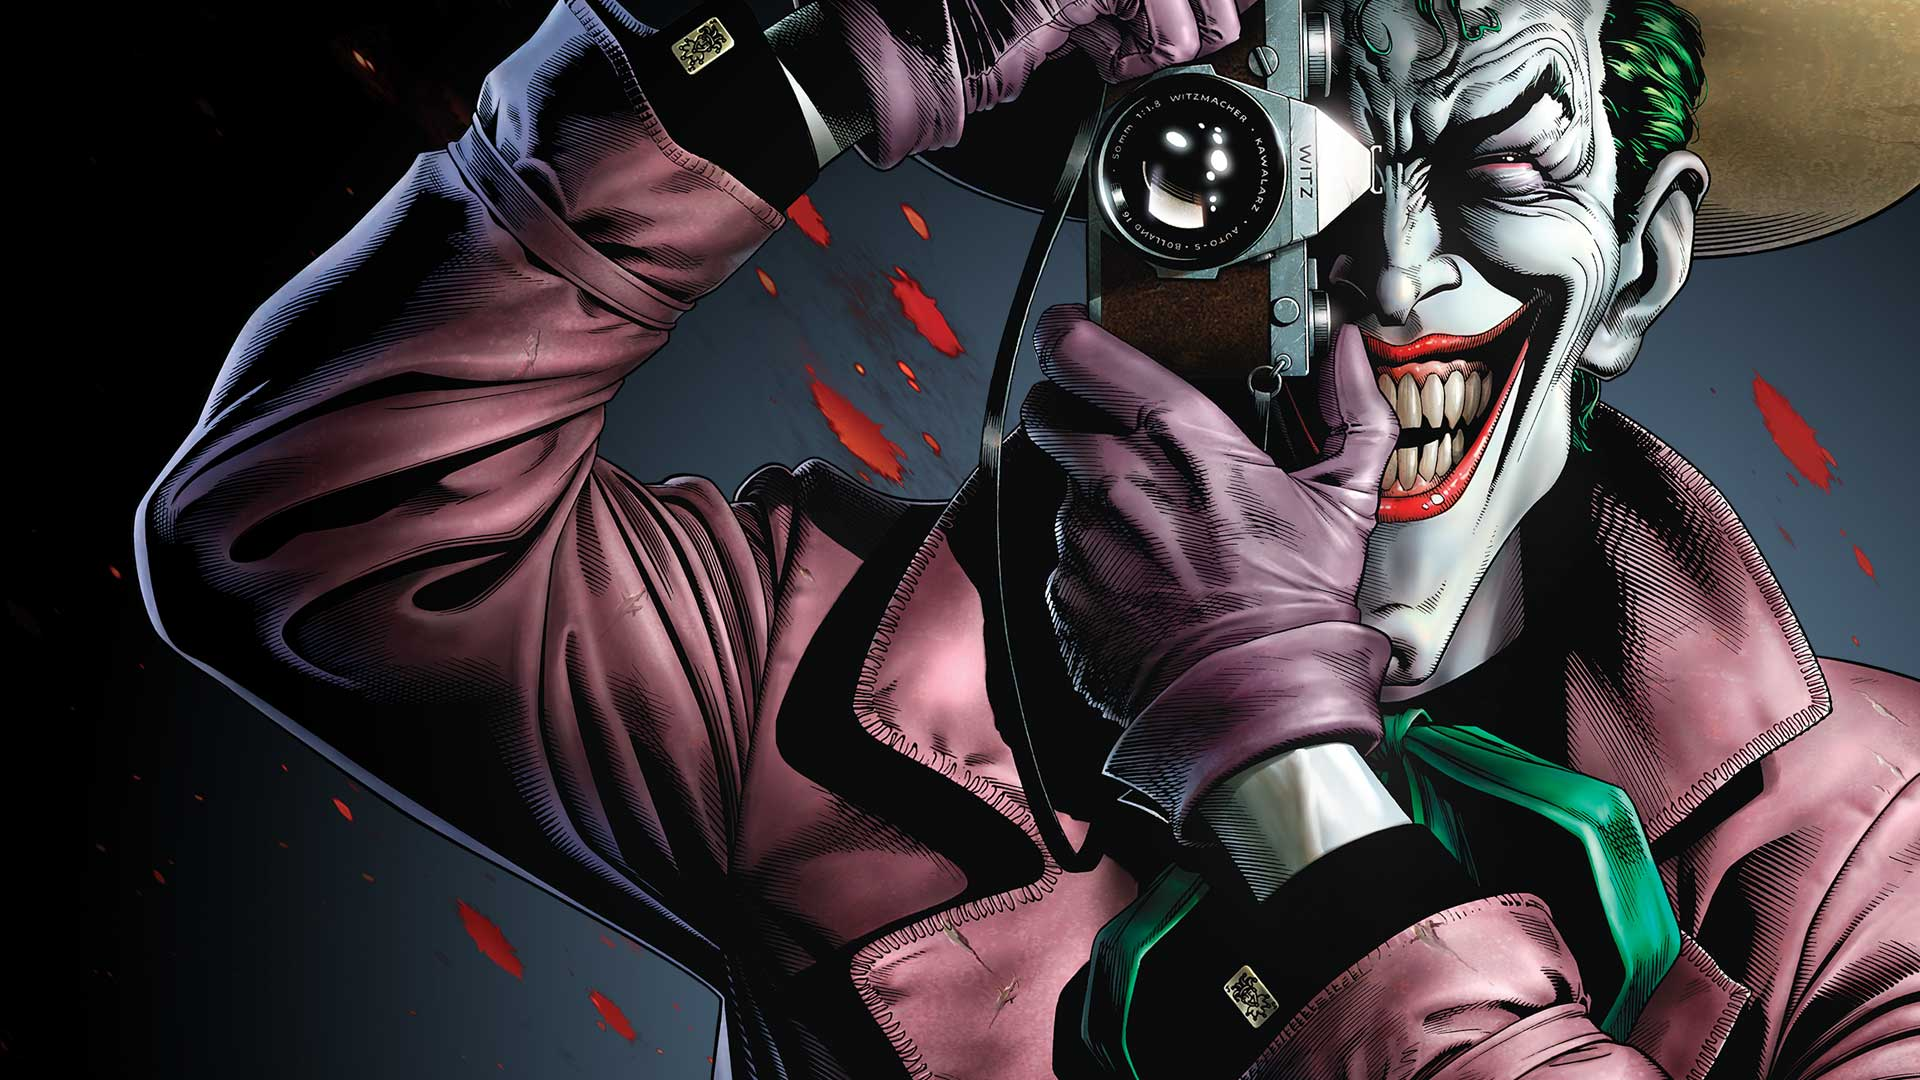 Joker Killing Joke 4k Ultra Hd Wallpapers Top Free Joker